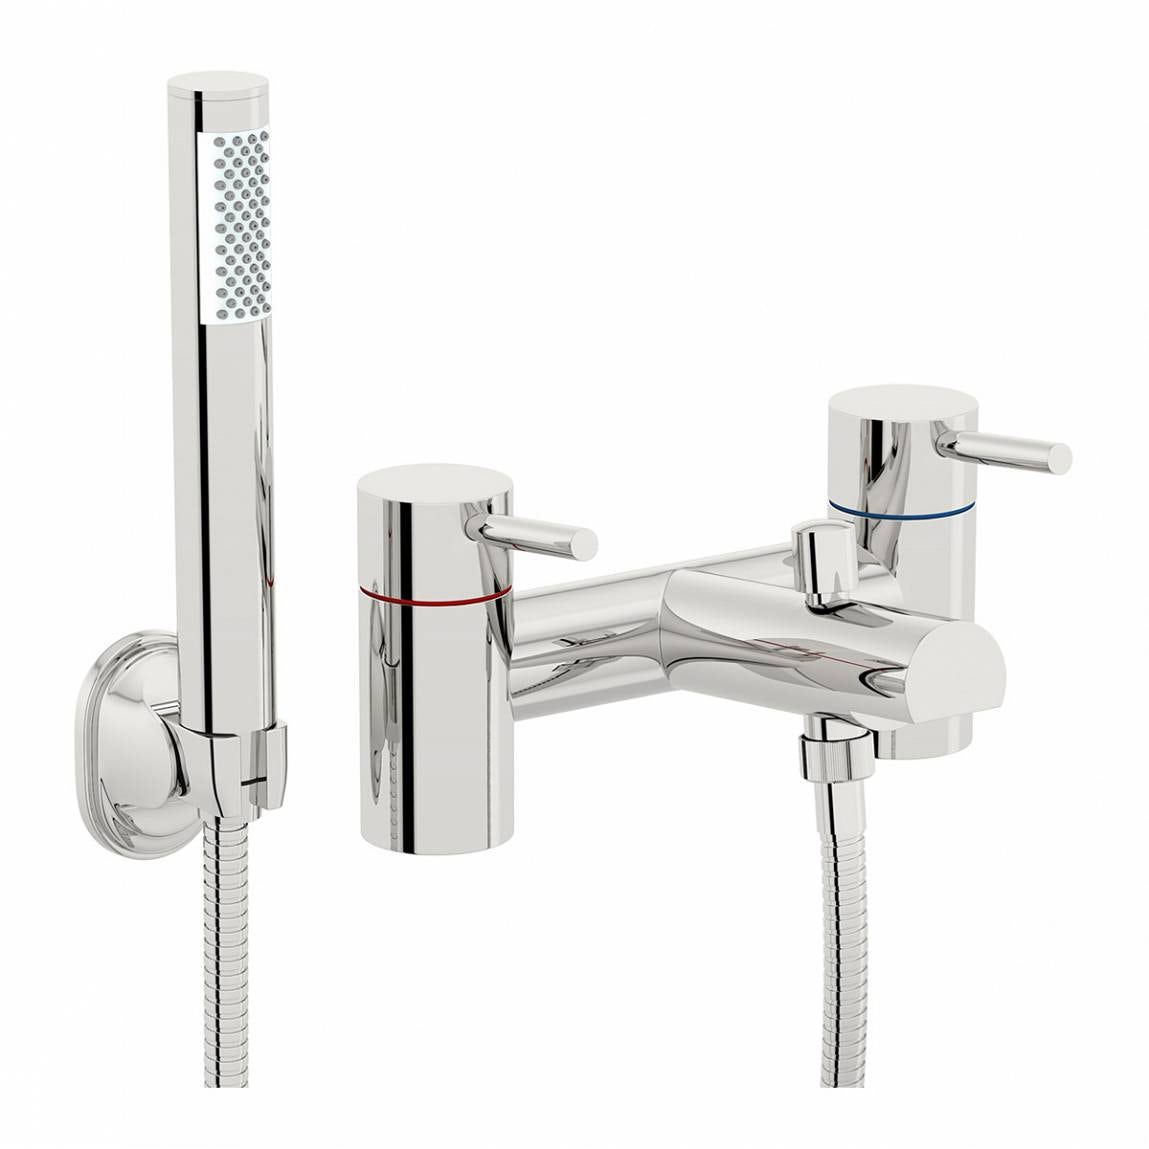 Matrix Bath Shower Mixer